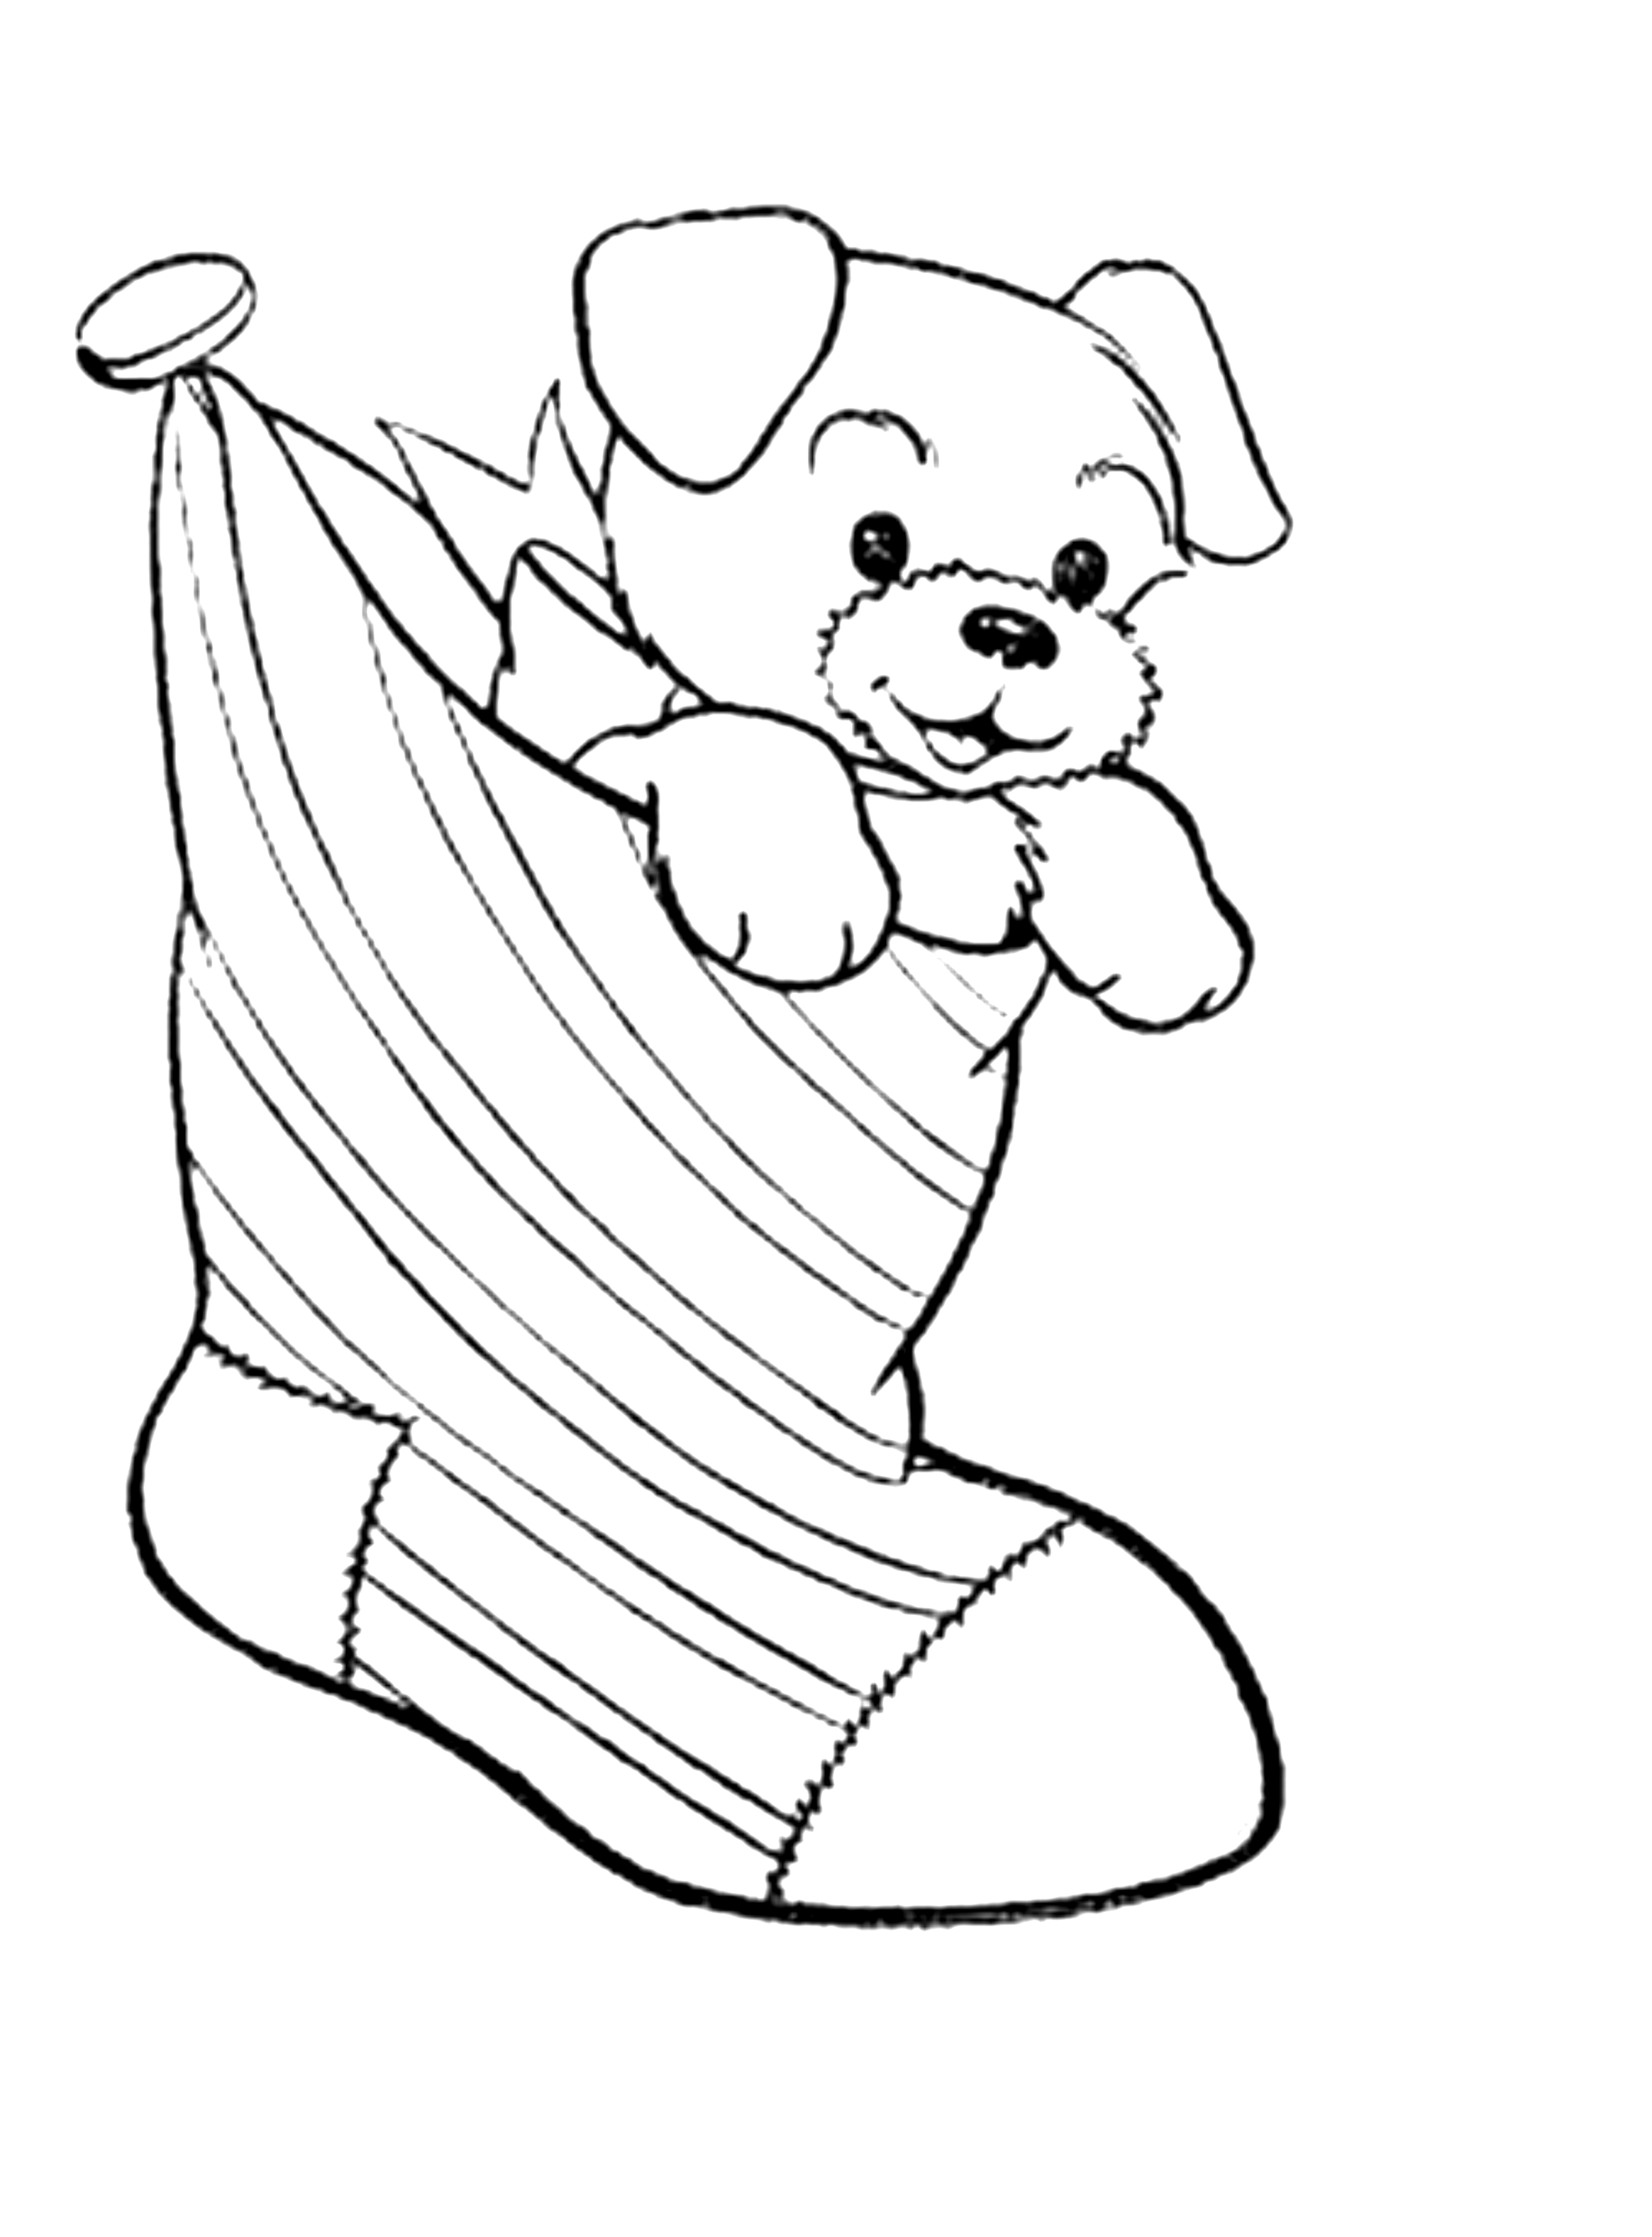 coloring cute cut cute coloring pages to print download free coloring sheets cute cut coloring